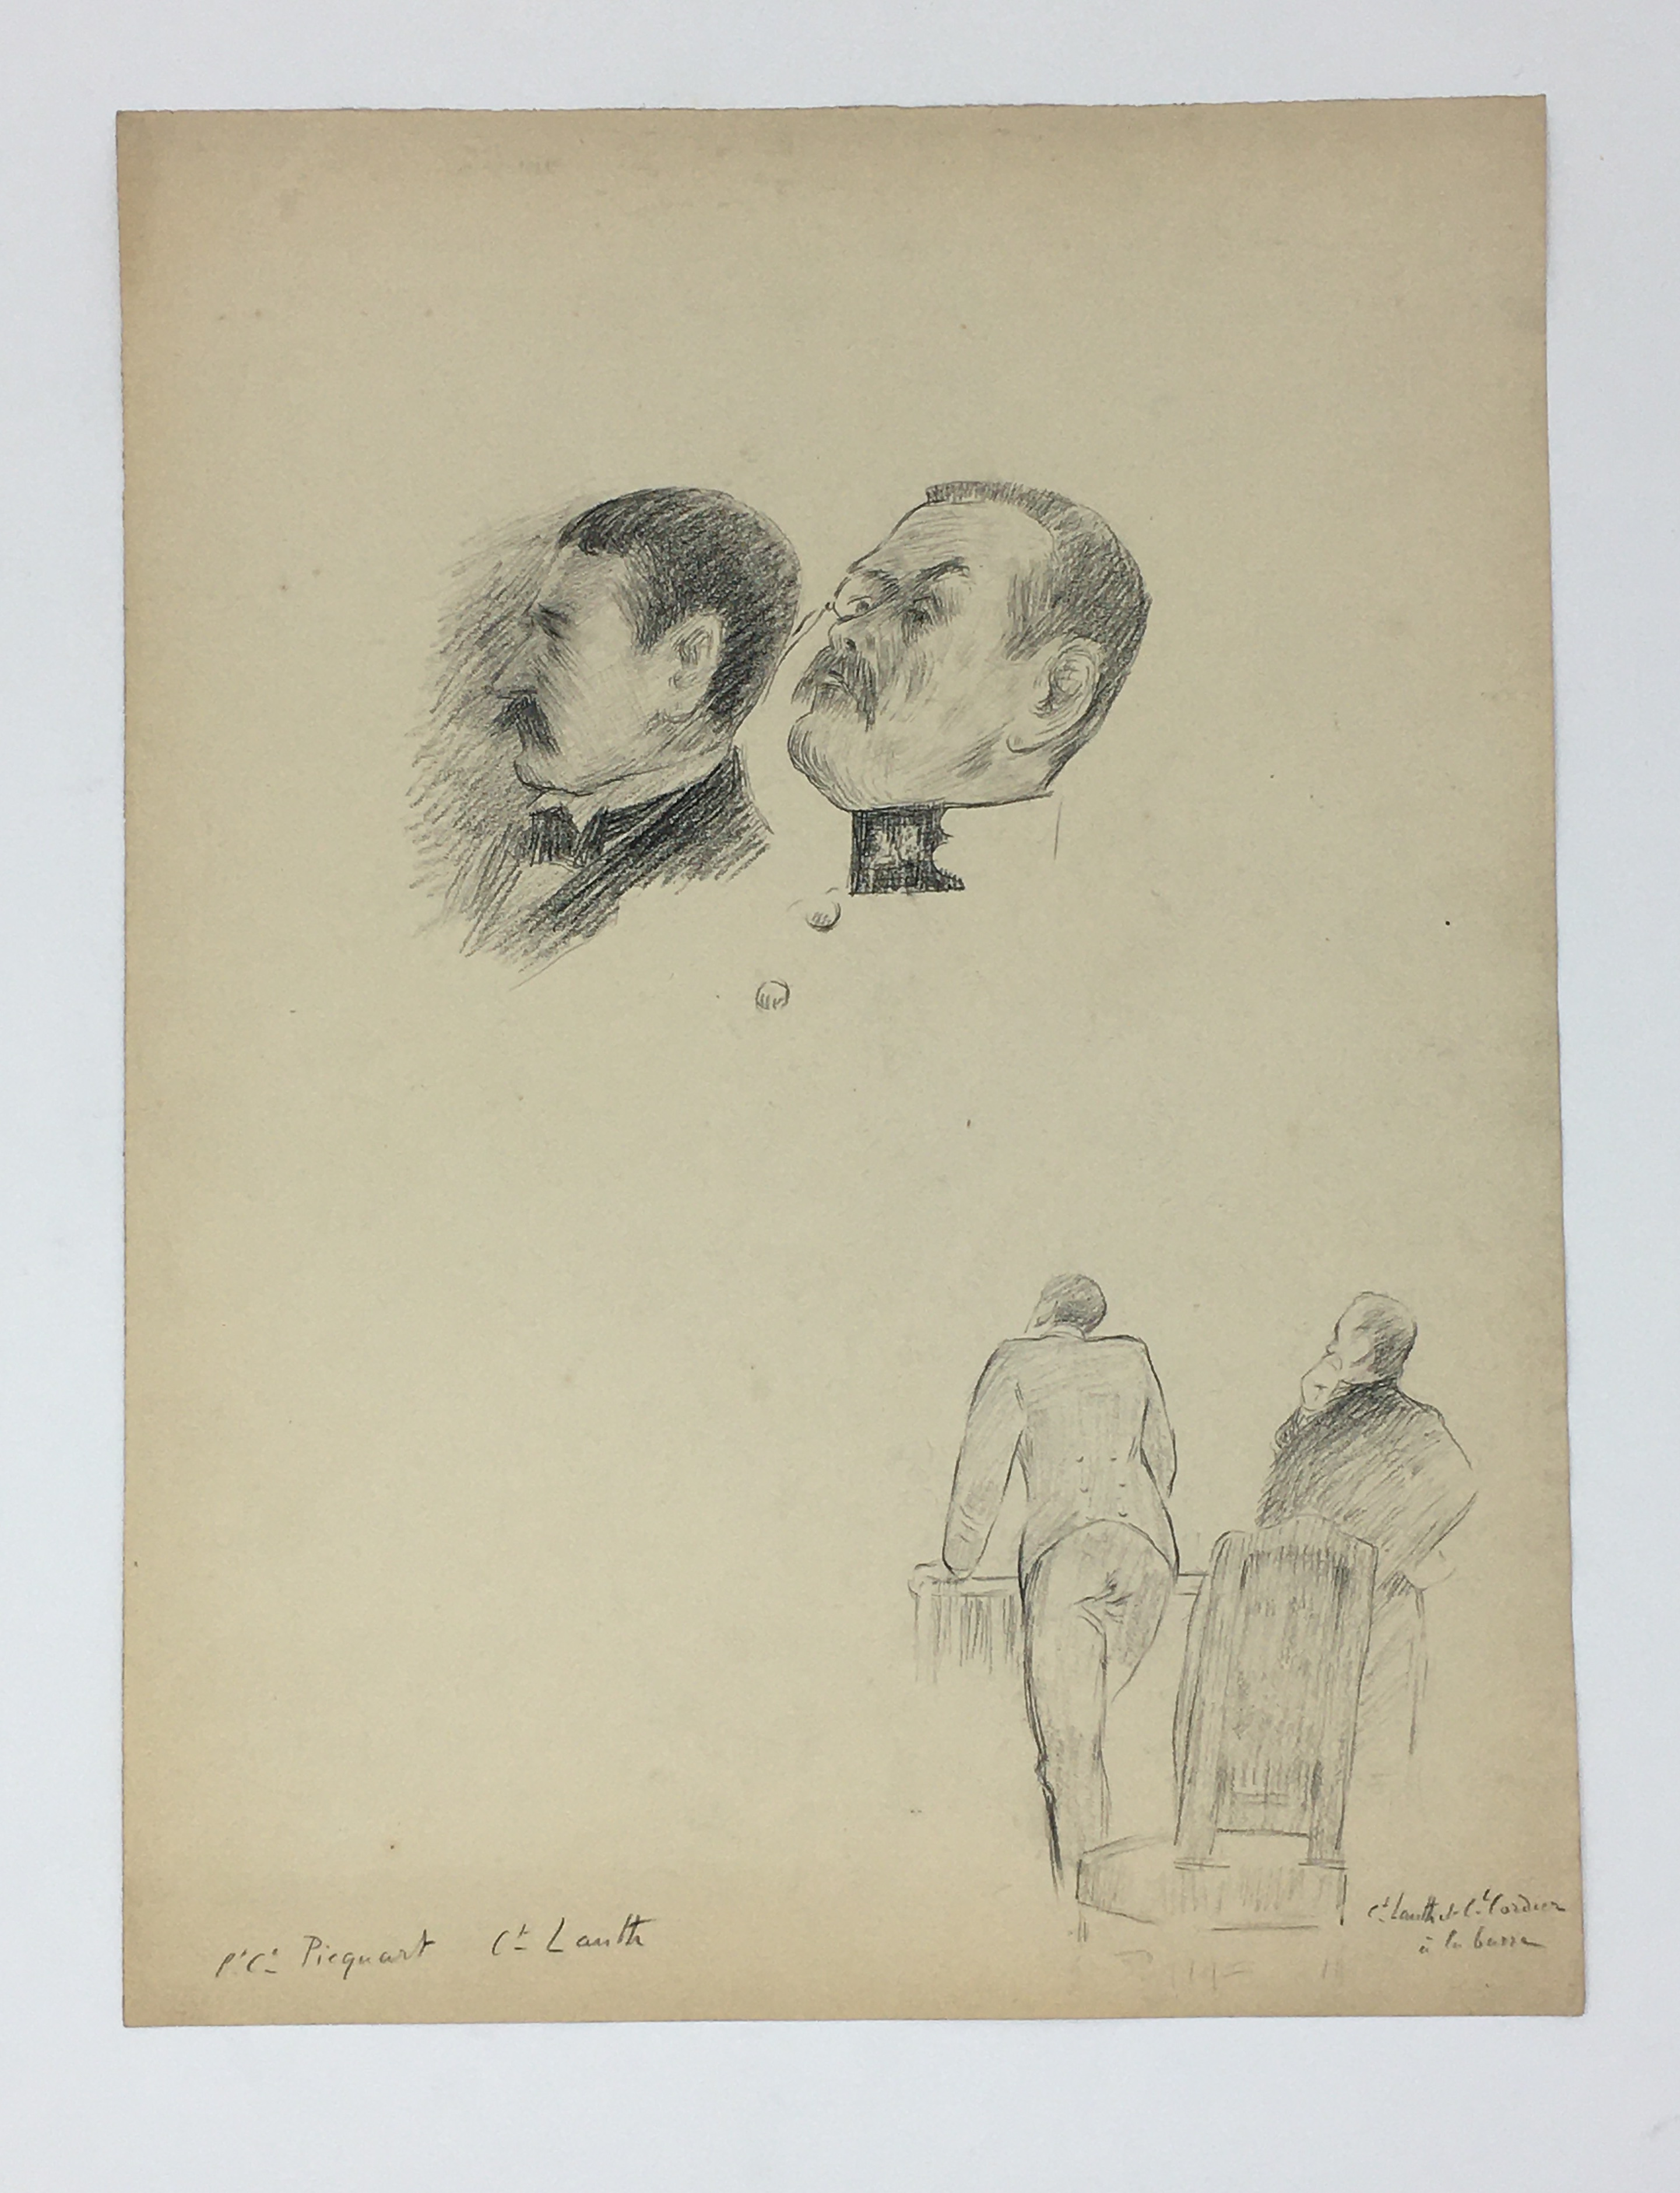 J'Accuse Newspaper, Emile Zola Quote, Signed Dreyfus Portrait, Rare Trial Drawings & Schwartzkoppen - Image 48 of 74